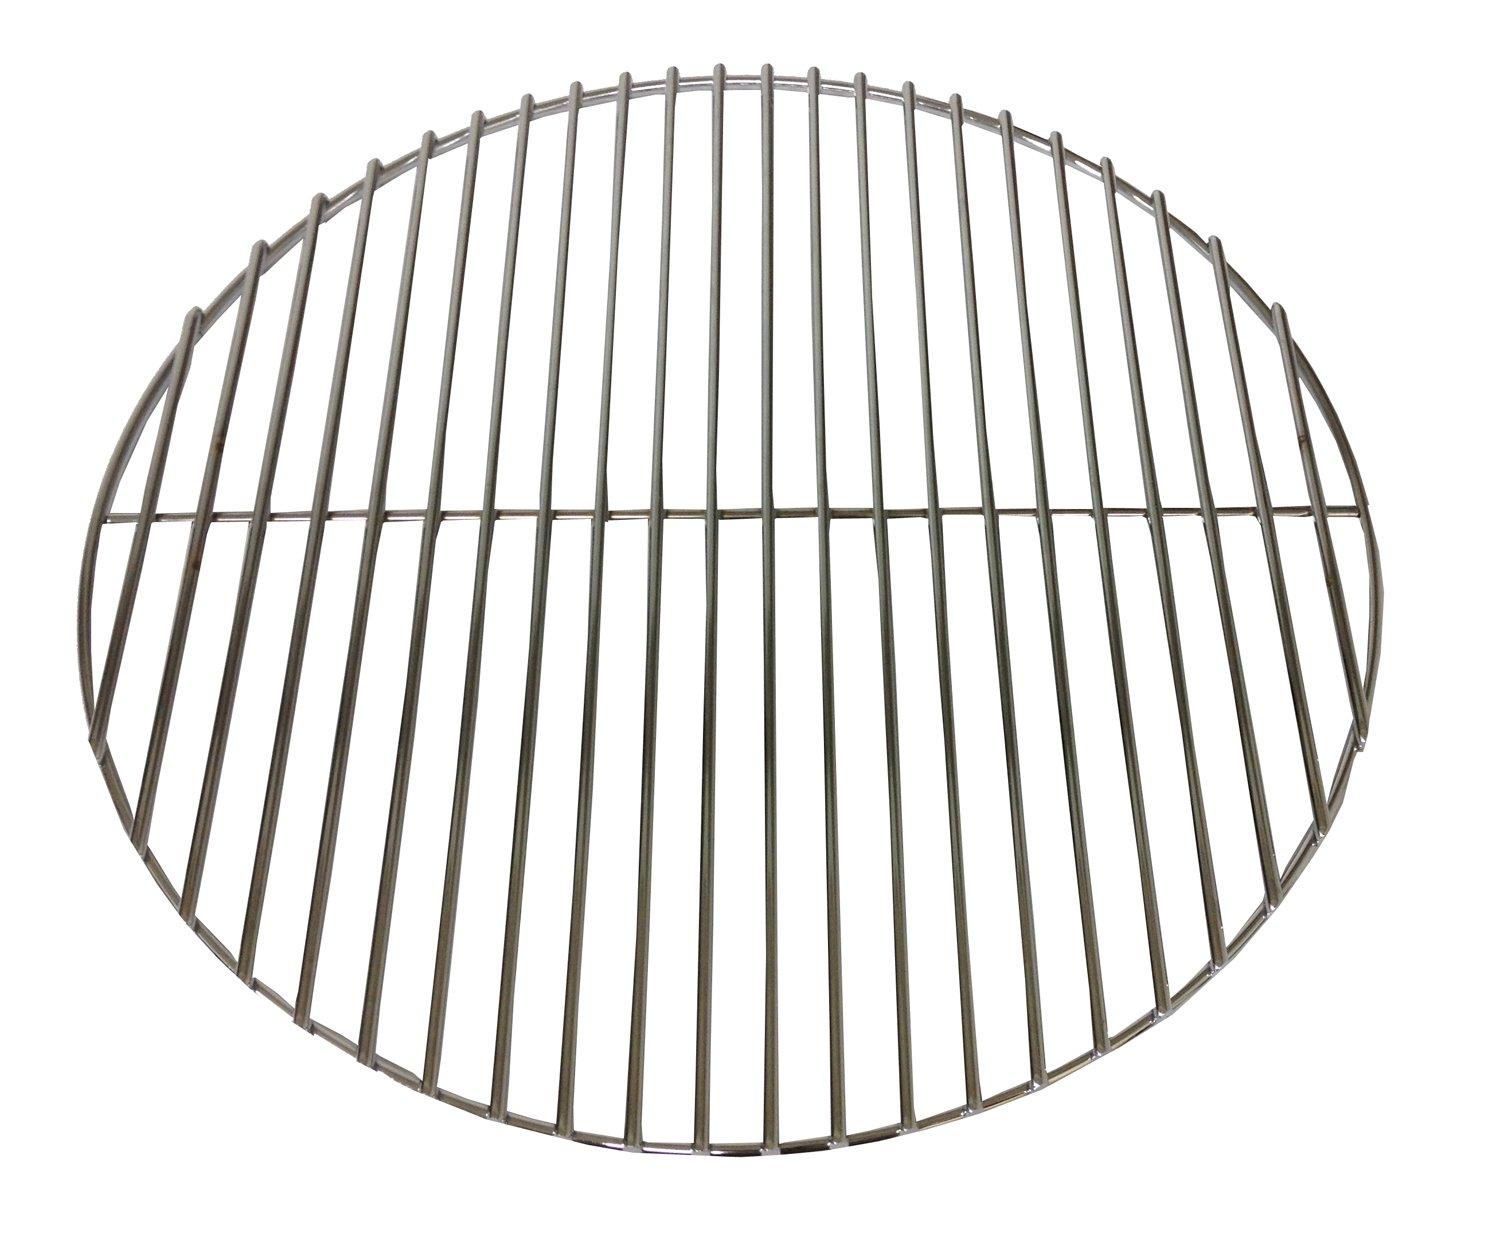 Dancook Barbecue Grid, 40cm - (product no. 120 122), designed to fit 1600 and 1300 Barbecues. KRISWELL